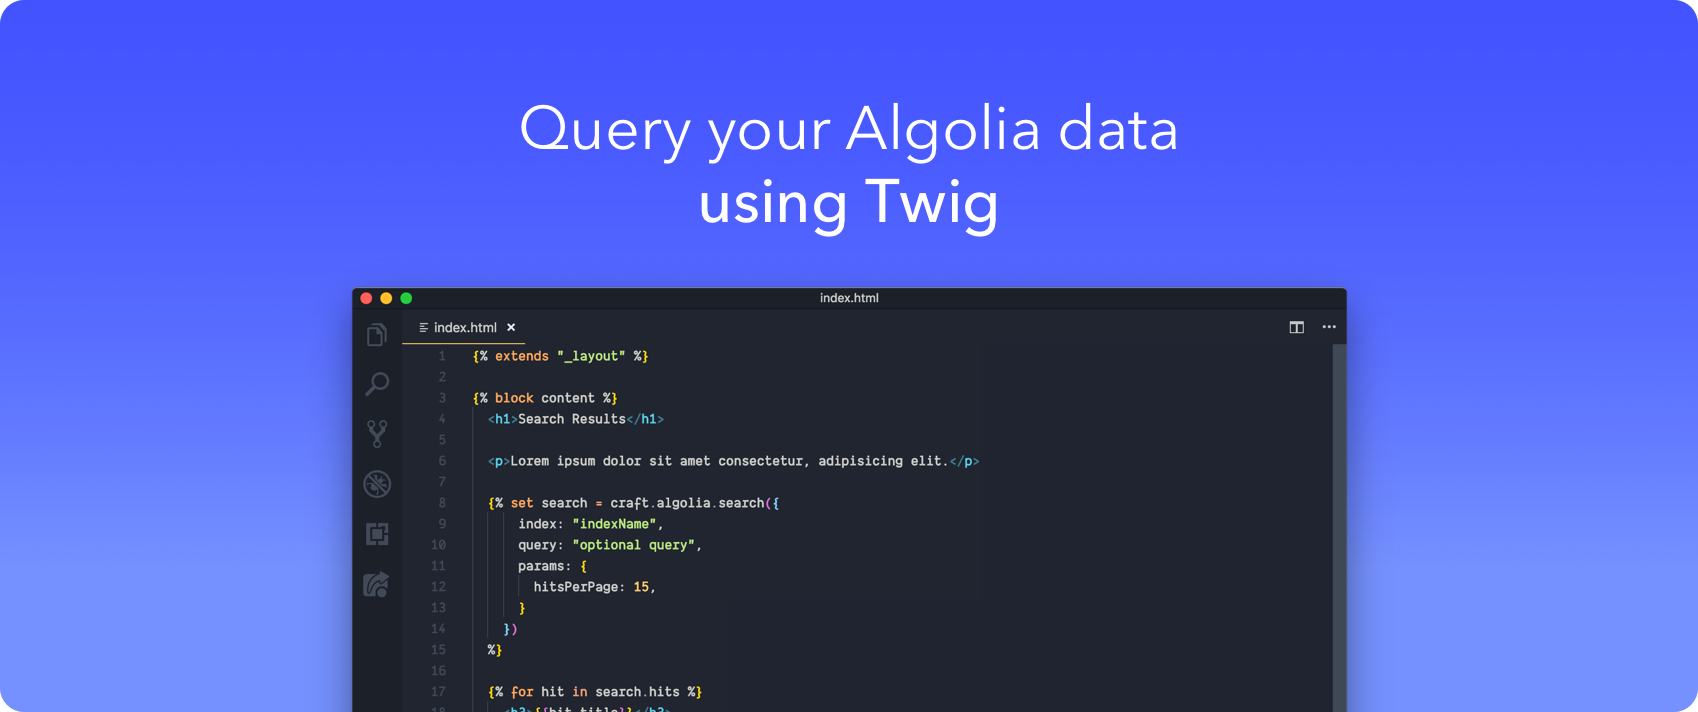 Query your Algolia data using Twig